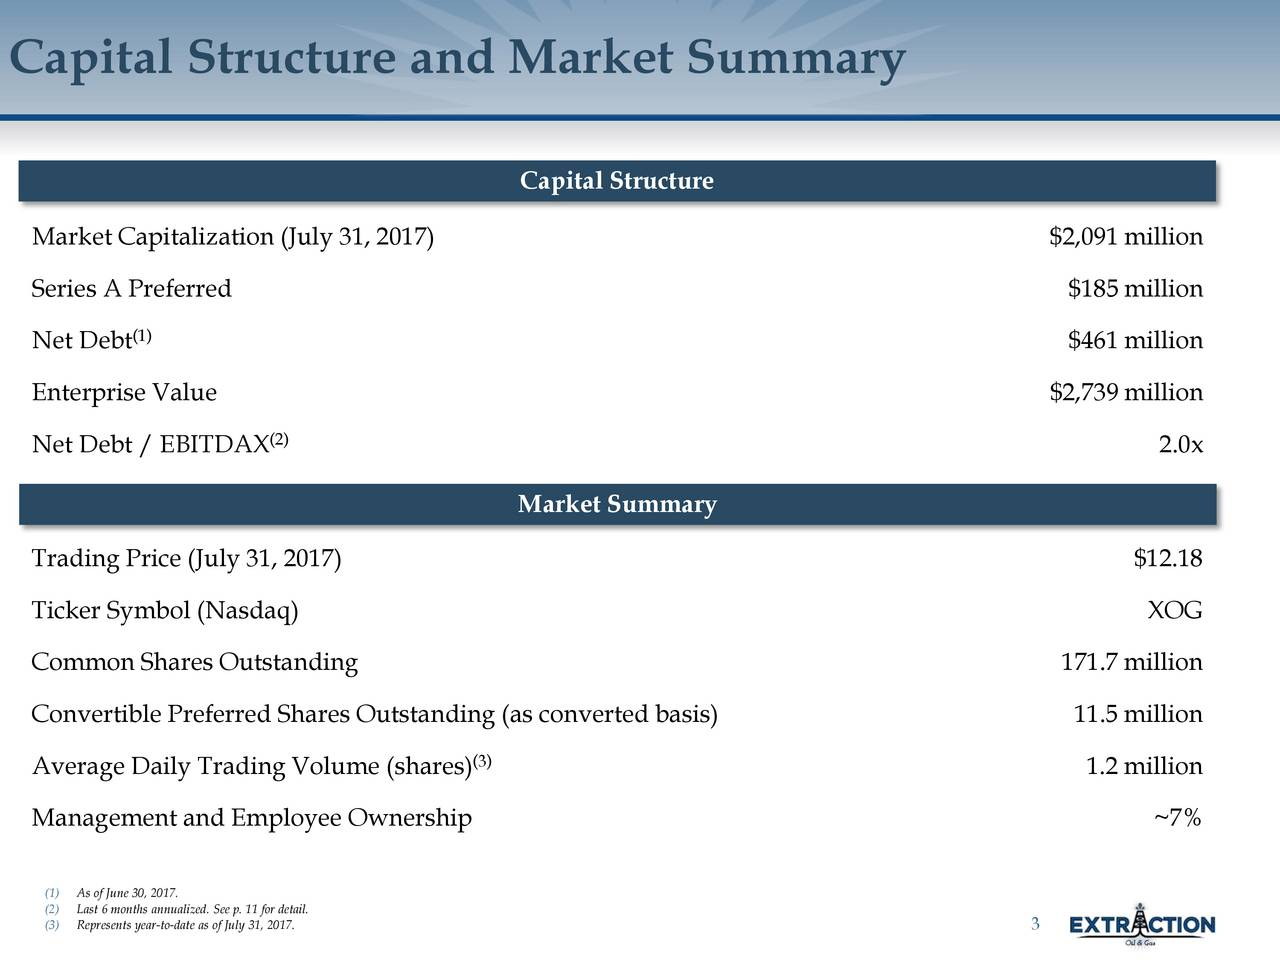 Capital Structure Market Capitalization (July 31, 2017) $2,091 million Series A Preferred $185 million (1) Net Debt $461 million Enterprise Value $2,739 million Net Debt / EBITDAX (2) 2.0x Market Summary Trading Price (July 31, 2017) $12.18 Ticker Symbol (Nasdaq) XOG Common Shares Outstanding 171.7 million Convertible Preferred Shares Outstanding (as convertedbasis) 11.5 million (3) Average Daily Trading Volume (shares) 1.2 million Management and Employee Ownership ~7% (1)As of June 30, 2017. (2)Last 6 months annualized. See p. 11 for detail. (3)Represents year-to-date as of July 31, 2017. 3